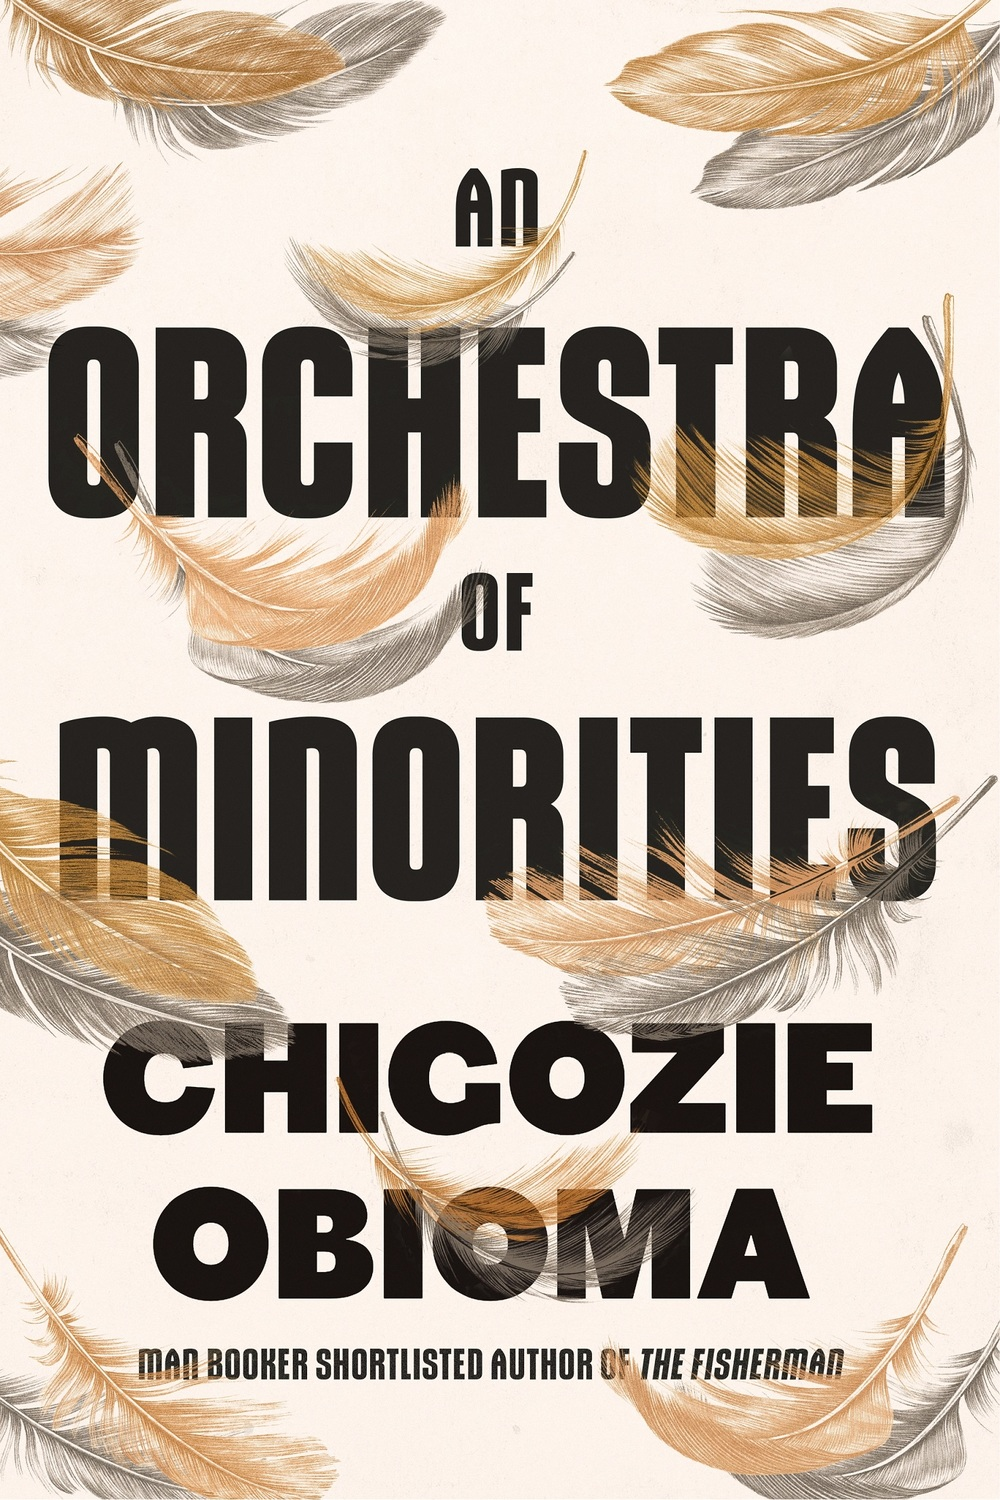 Large chigozie obioma an orchestra of minorities